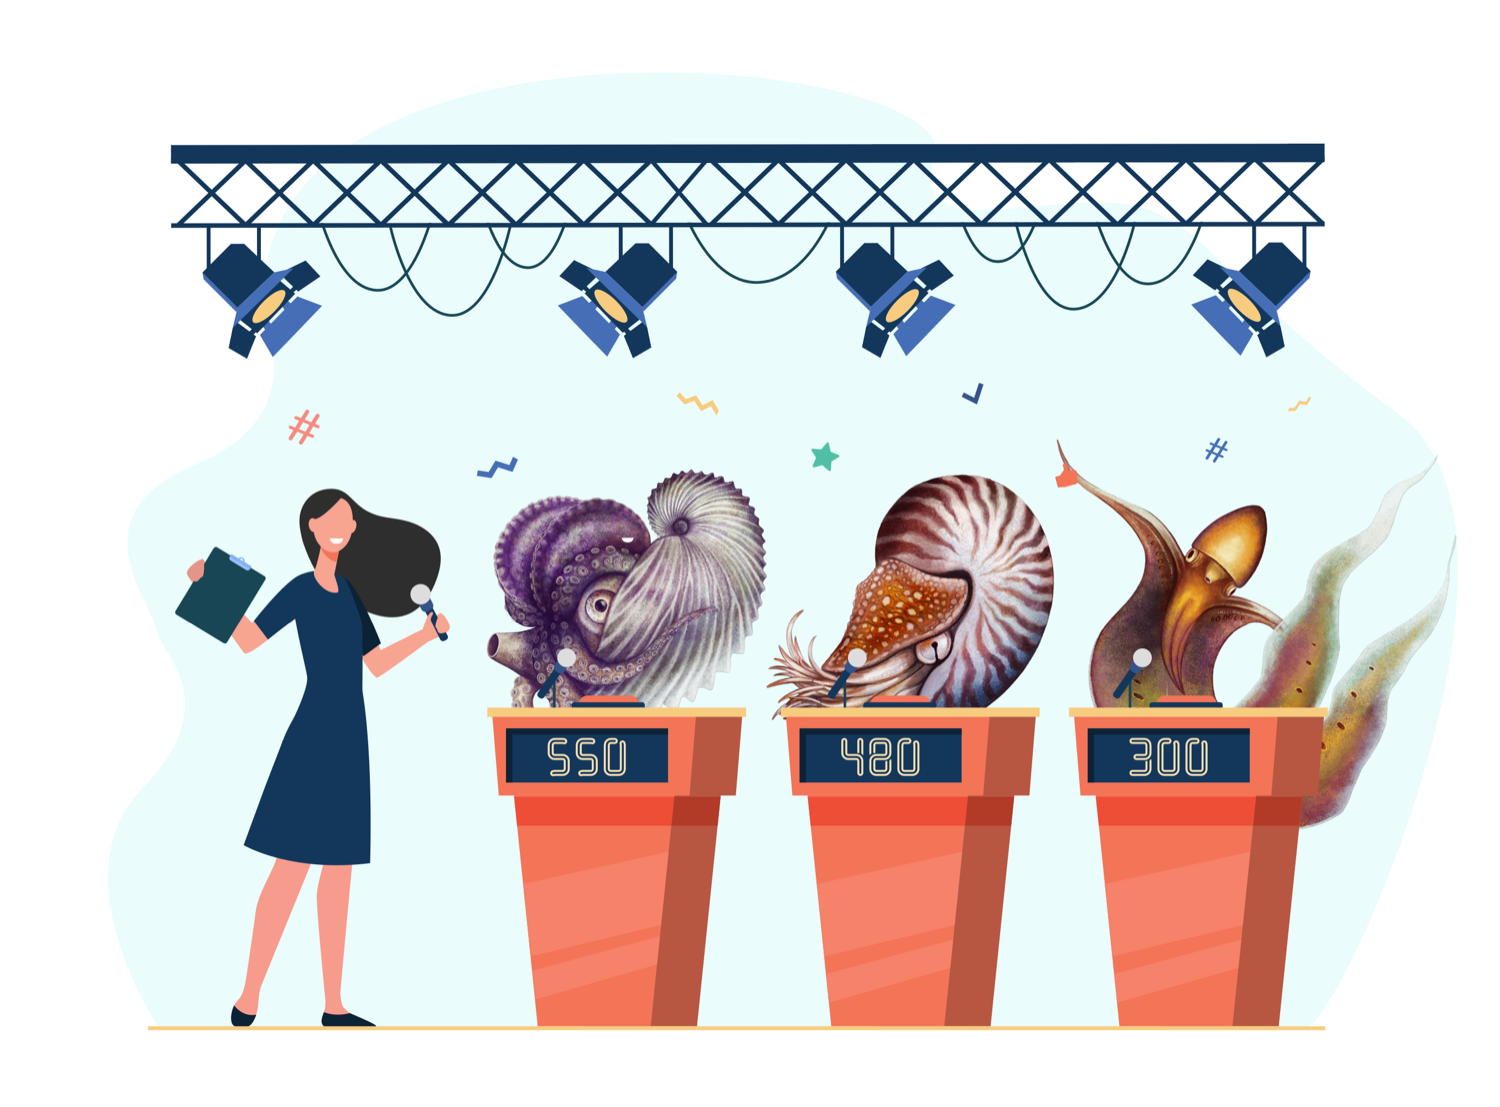 an illustration of a game show stage, with three podiums with an argonaut, nautilus, and blanket squid behind them, and a white woman host to their left